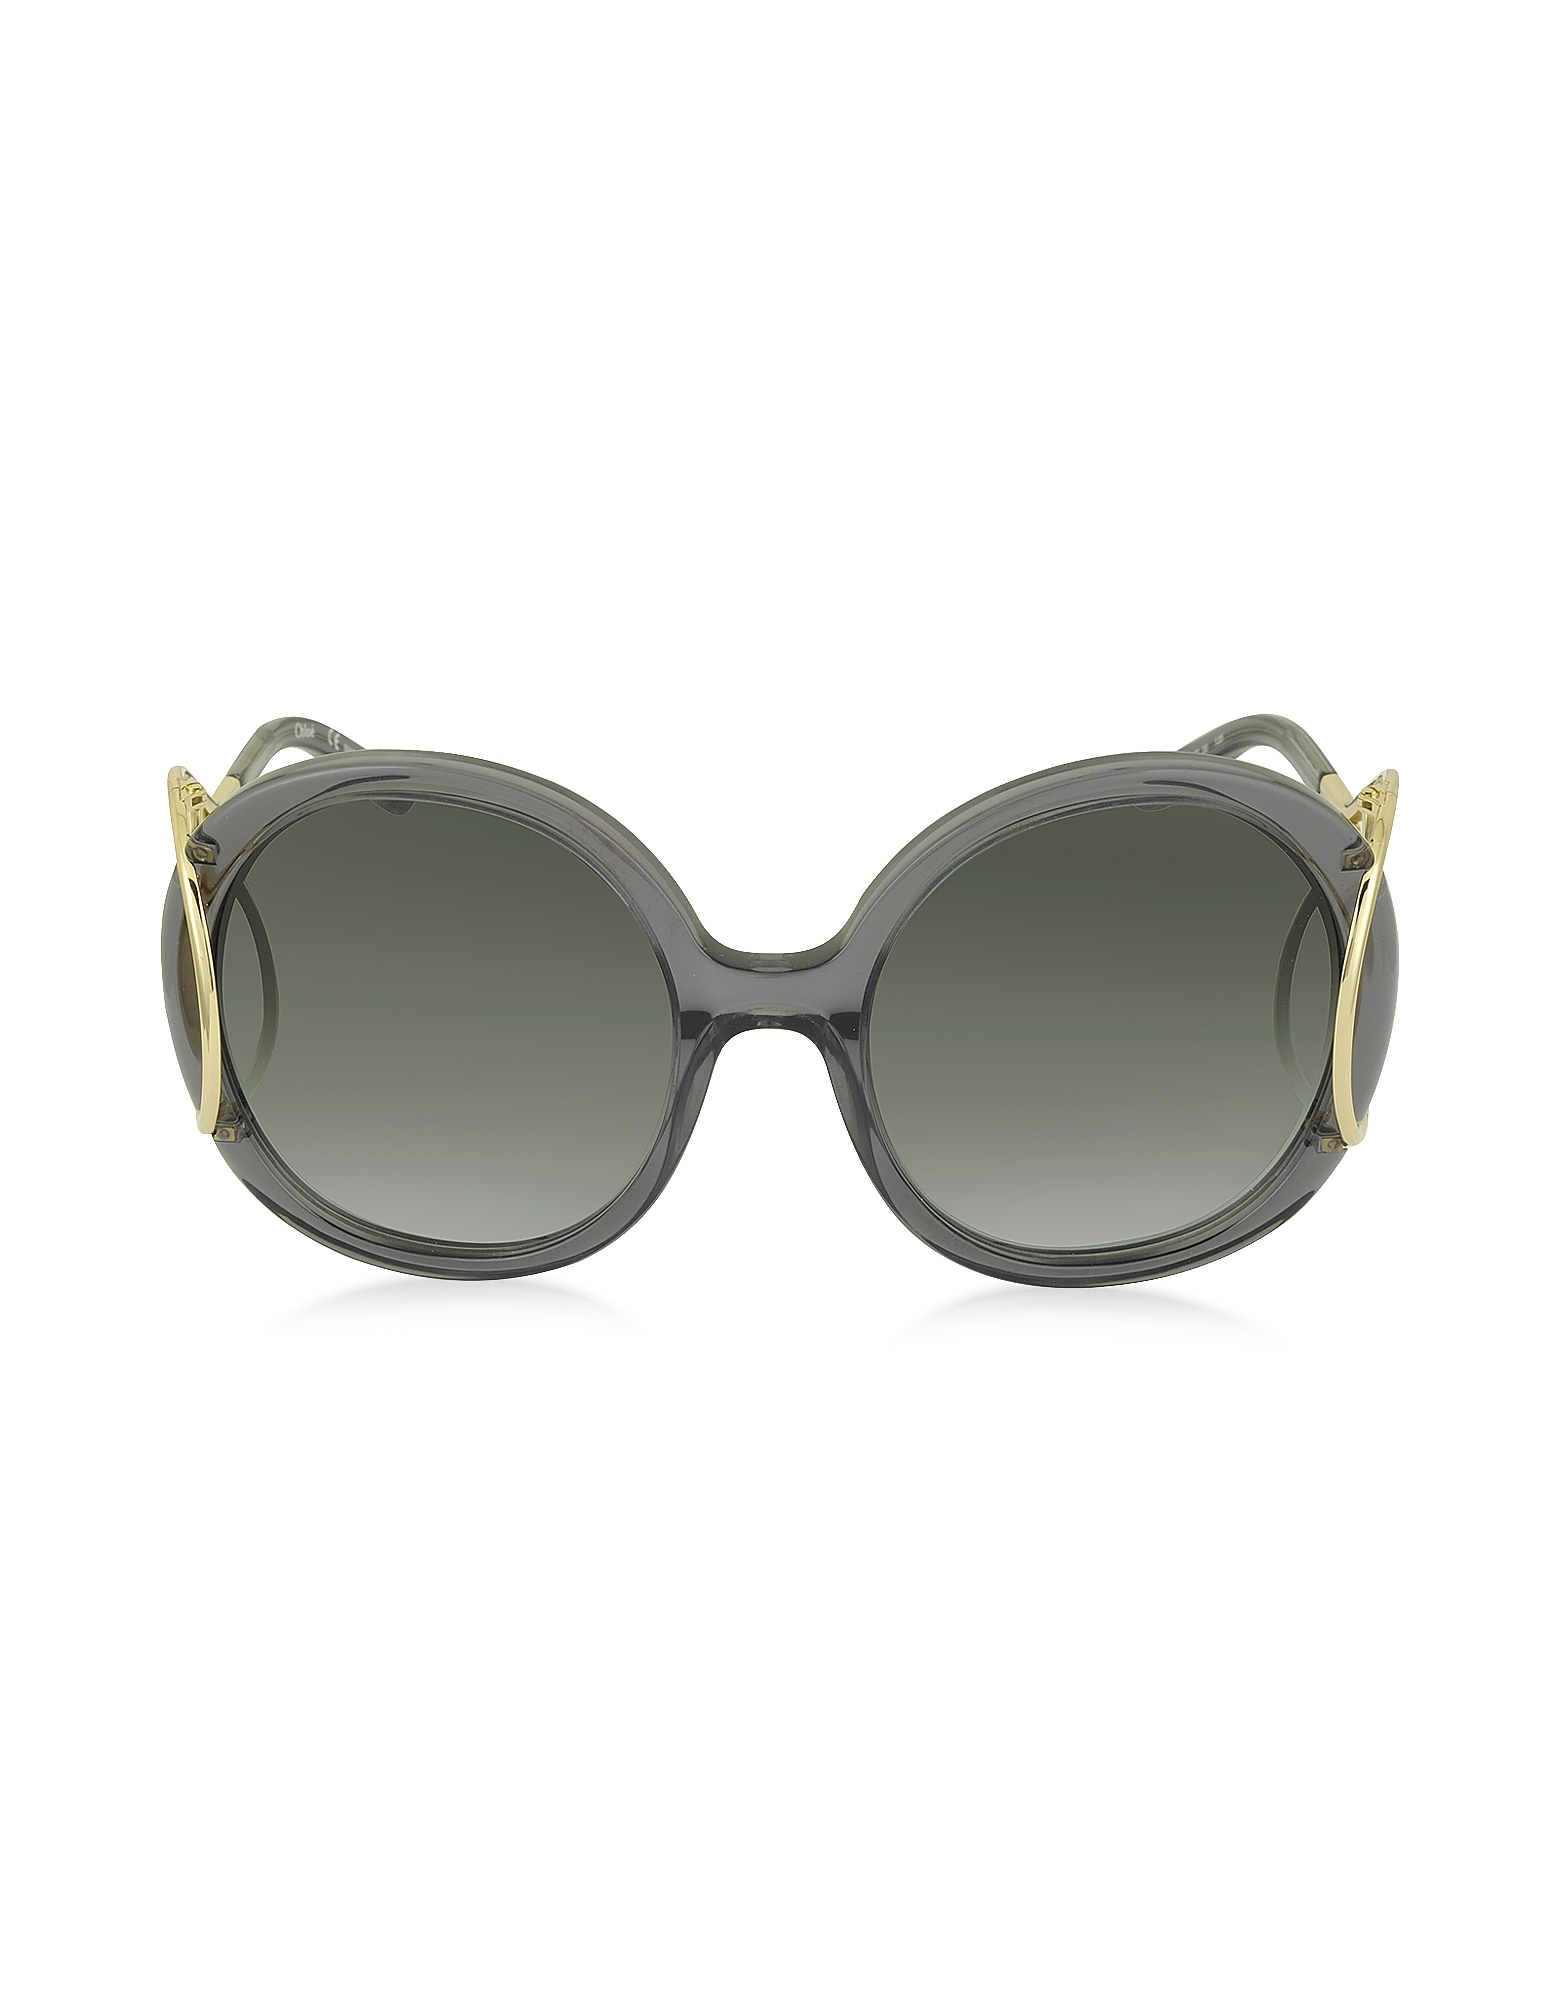 Chloe Sunglasses, JACKSON CE 703S Large Round Acetate and Metal Women's Sunglasses